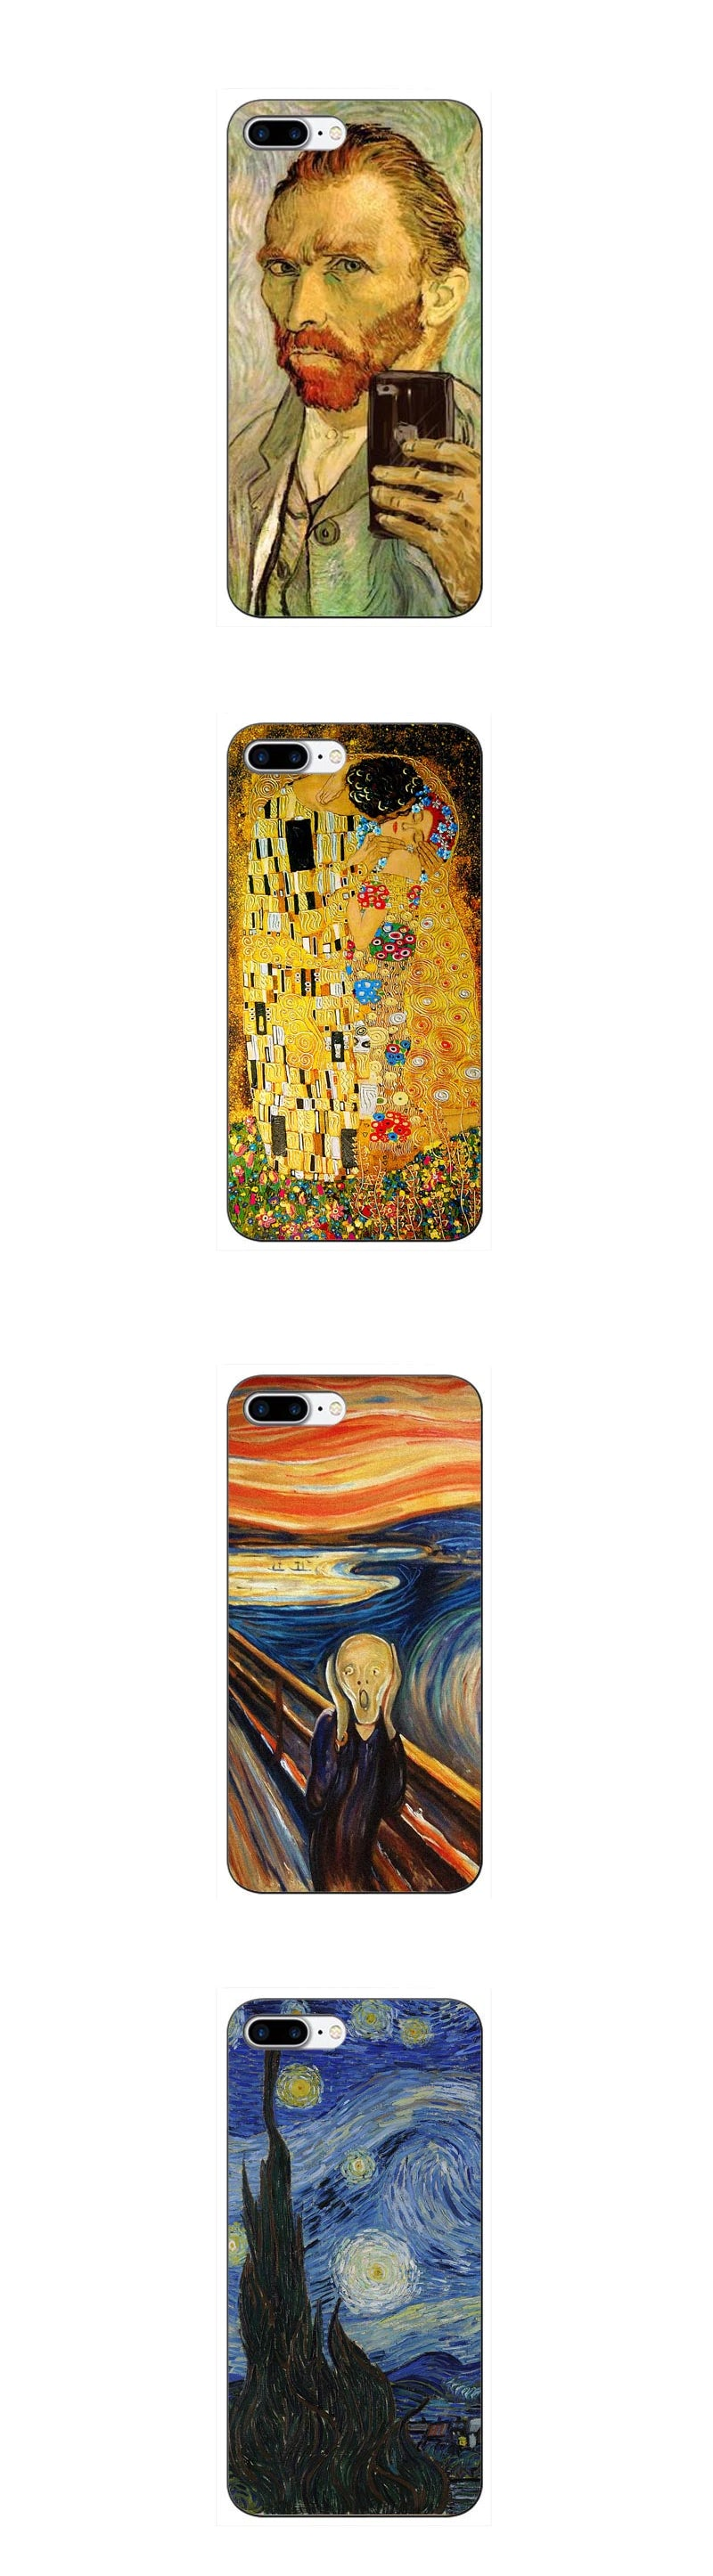 Classic Art Phone Case For iPhone XR XS MAX 5 5S SE 6 6SPlus 7 7PLUS 8 8Plus Gustav Klimt The Kiss Art Van Gogh Phone Case